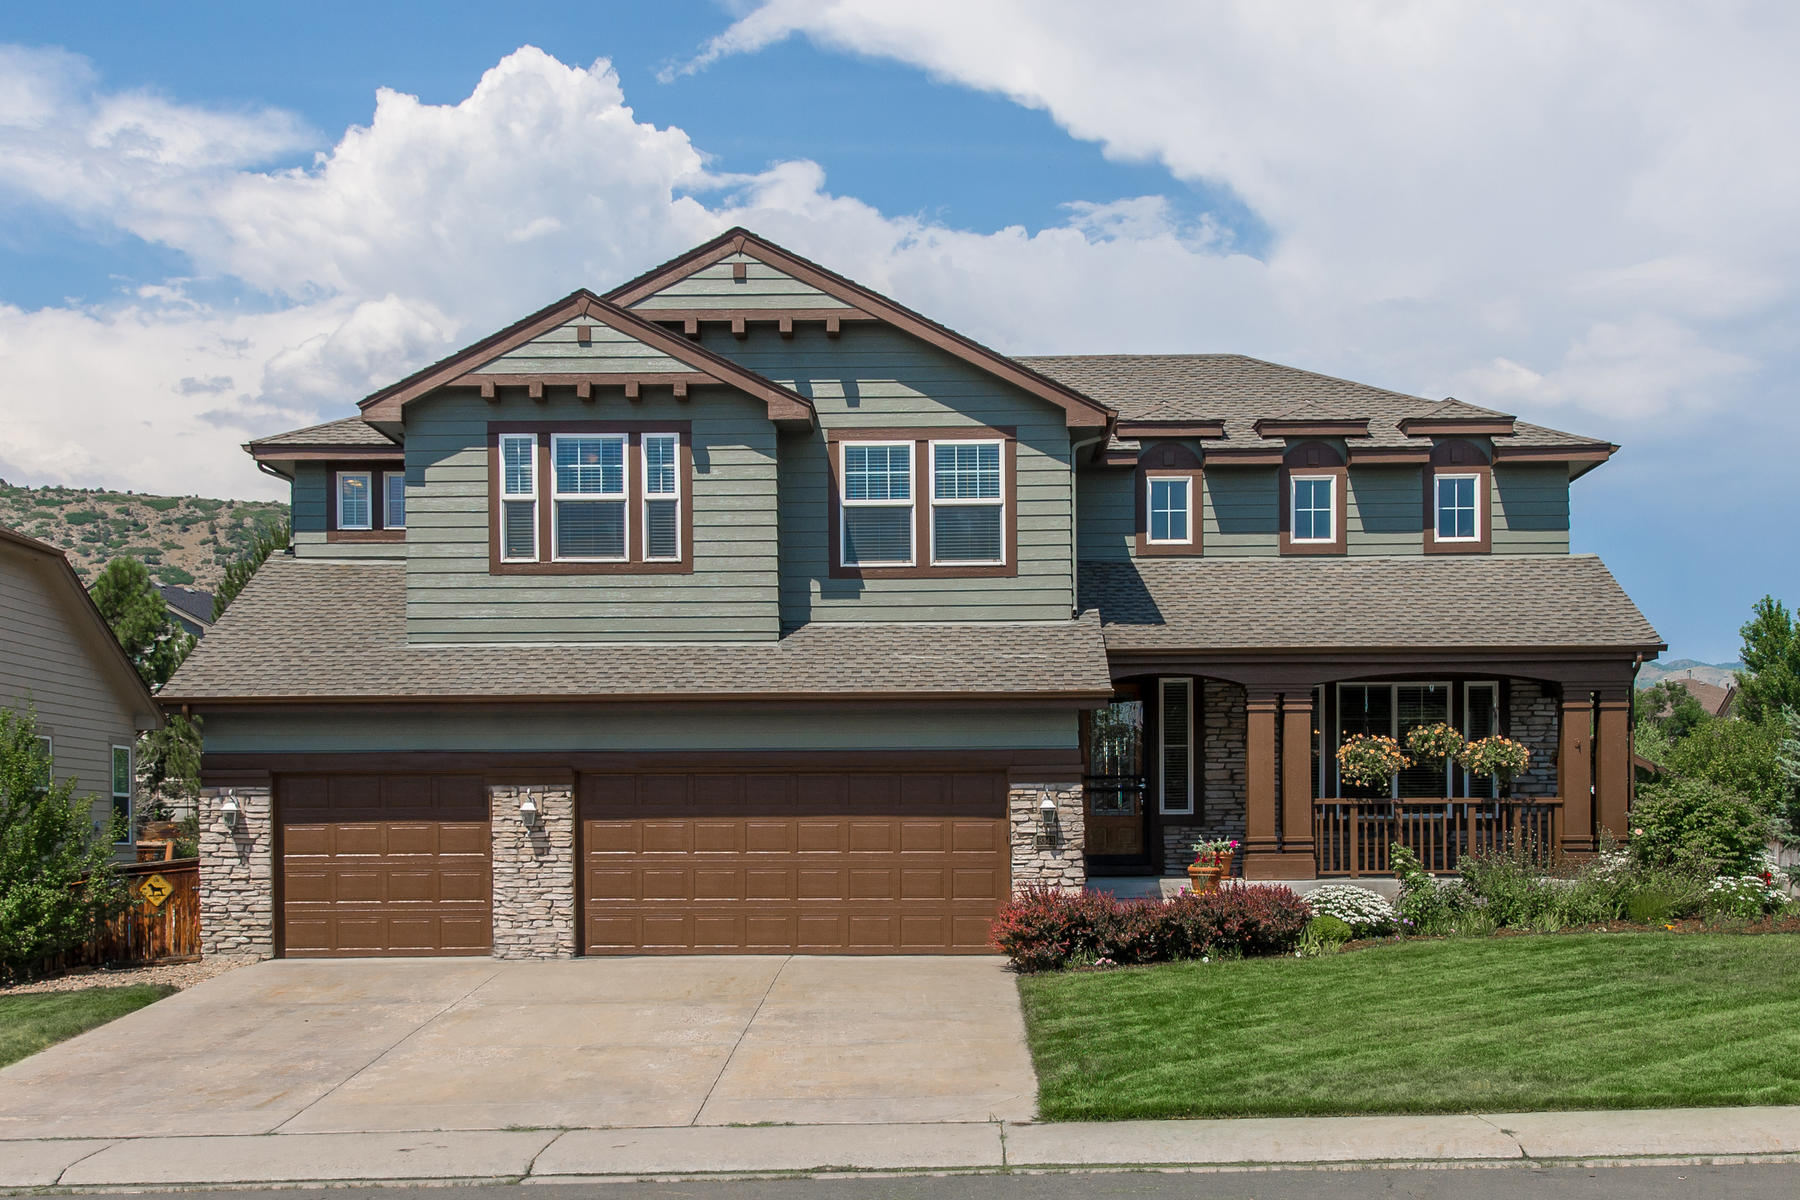 Single Family Home for Active at One of the largest and most open floor plan currently being offered in Trailmark 9343 S Holland Way Littleton, Colorado 80127 United States